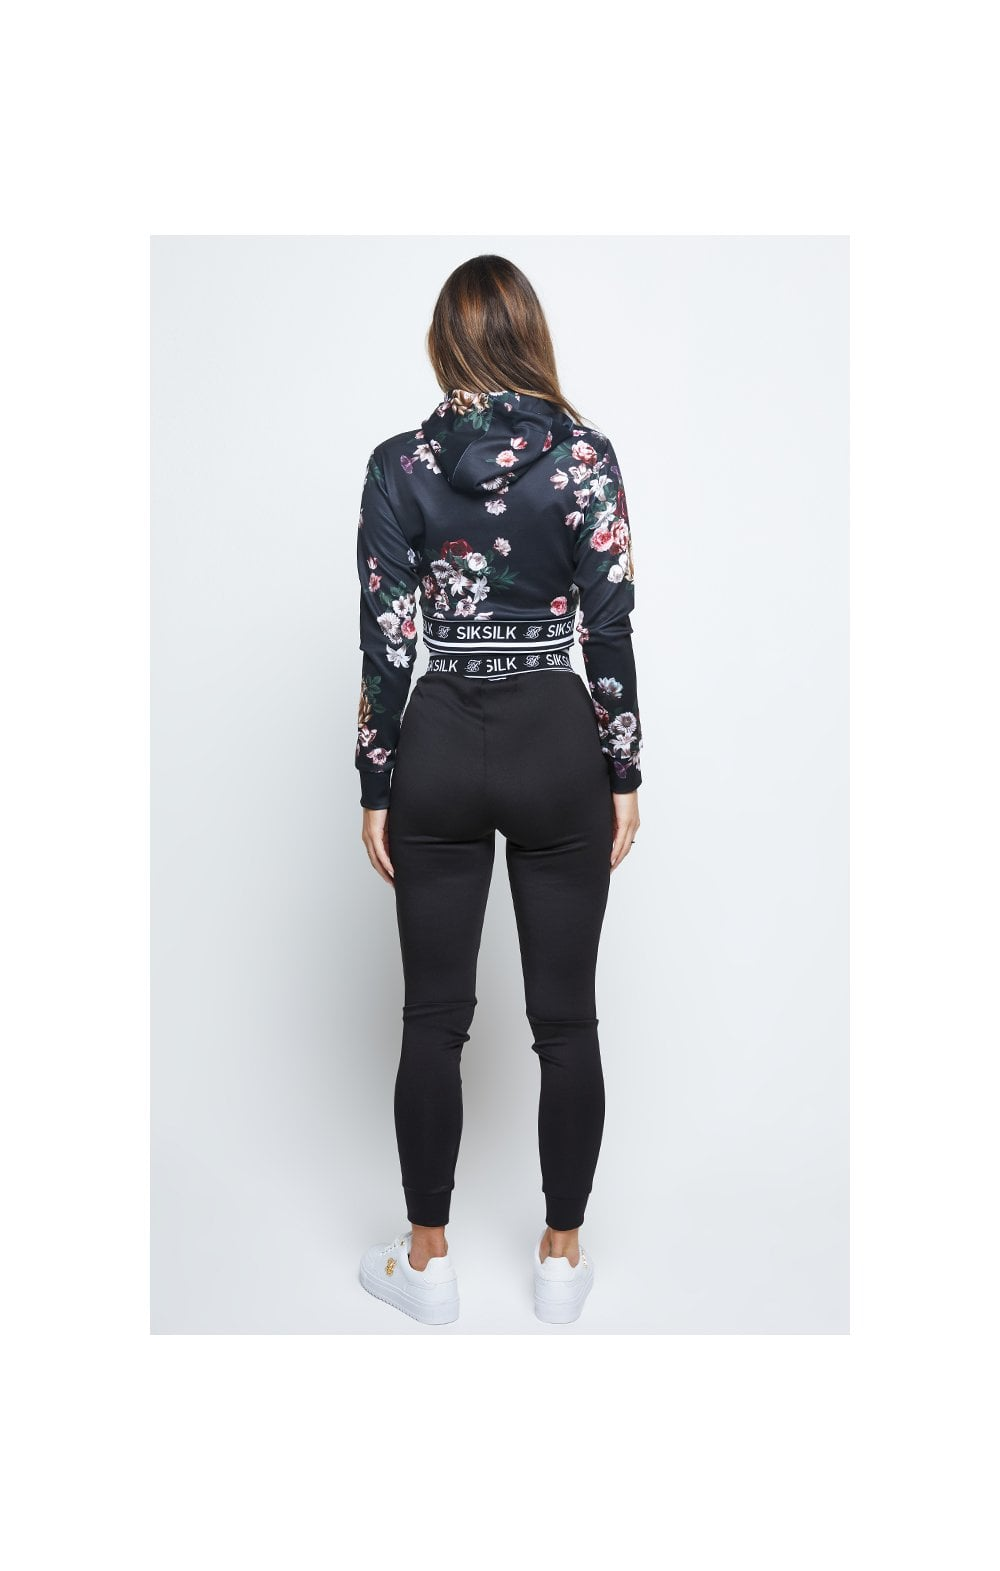 Load image into Gallery viewer, SikSilk Prestige Floral Track Top - Black (4)